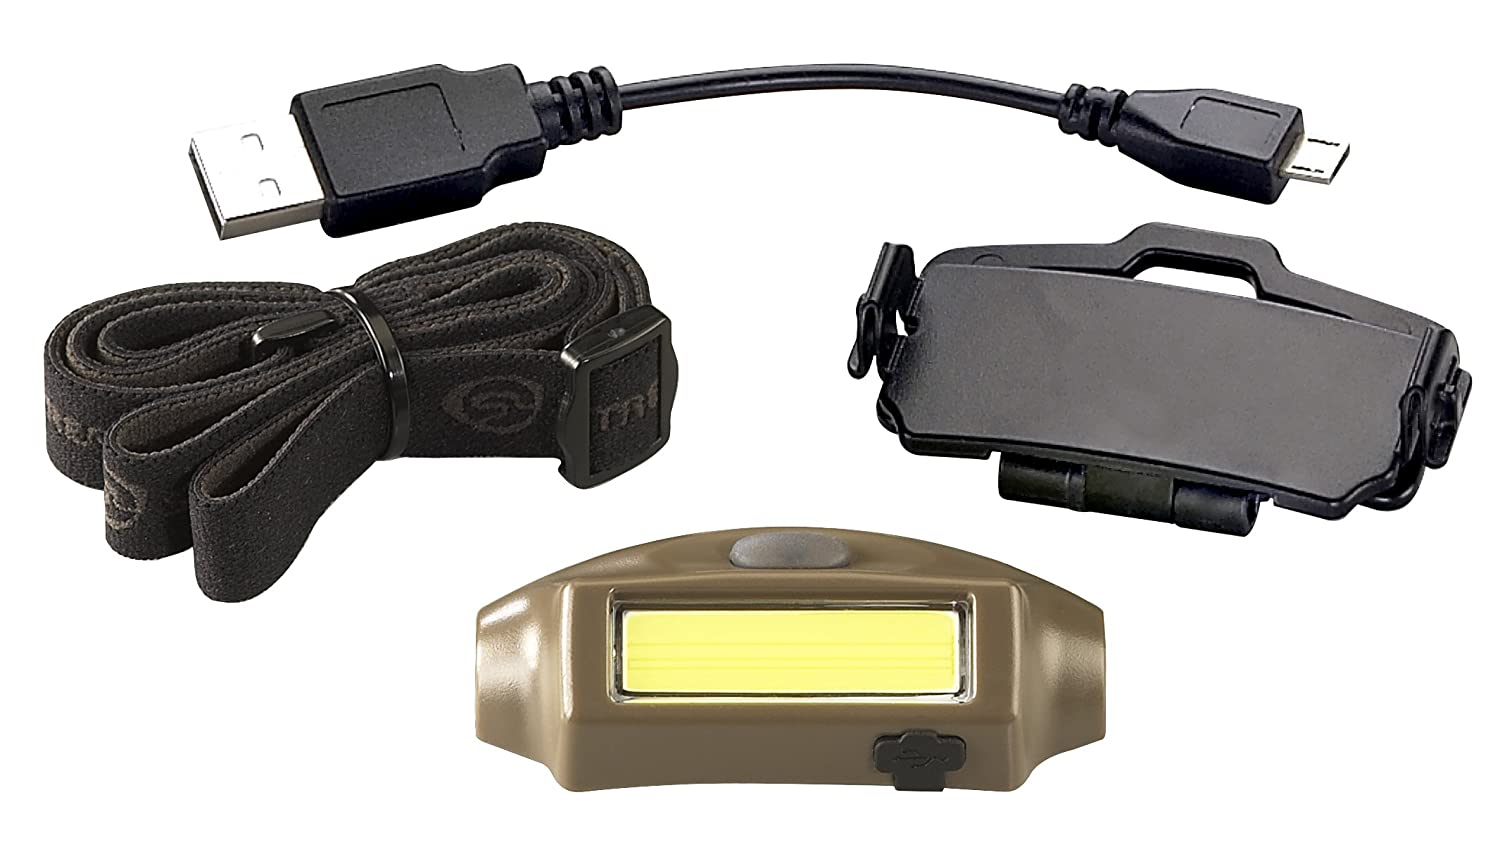 180 Lumens Blue with White LED Streamlight 61704 Bandit Includes Elastic Headstrap /& USB Cord Clam